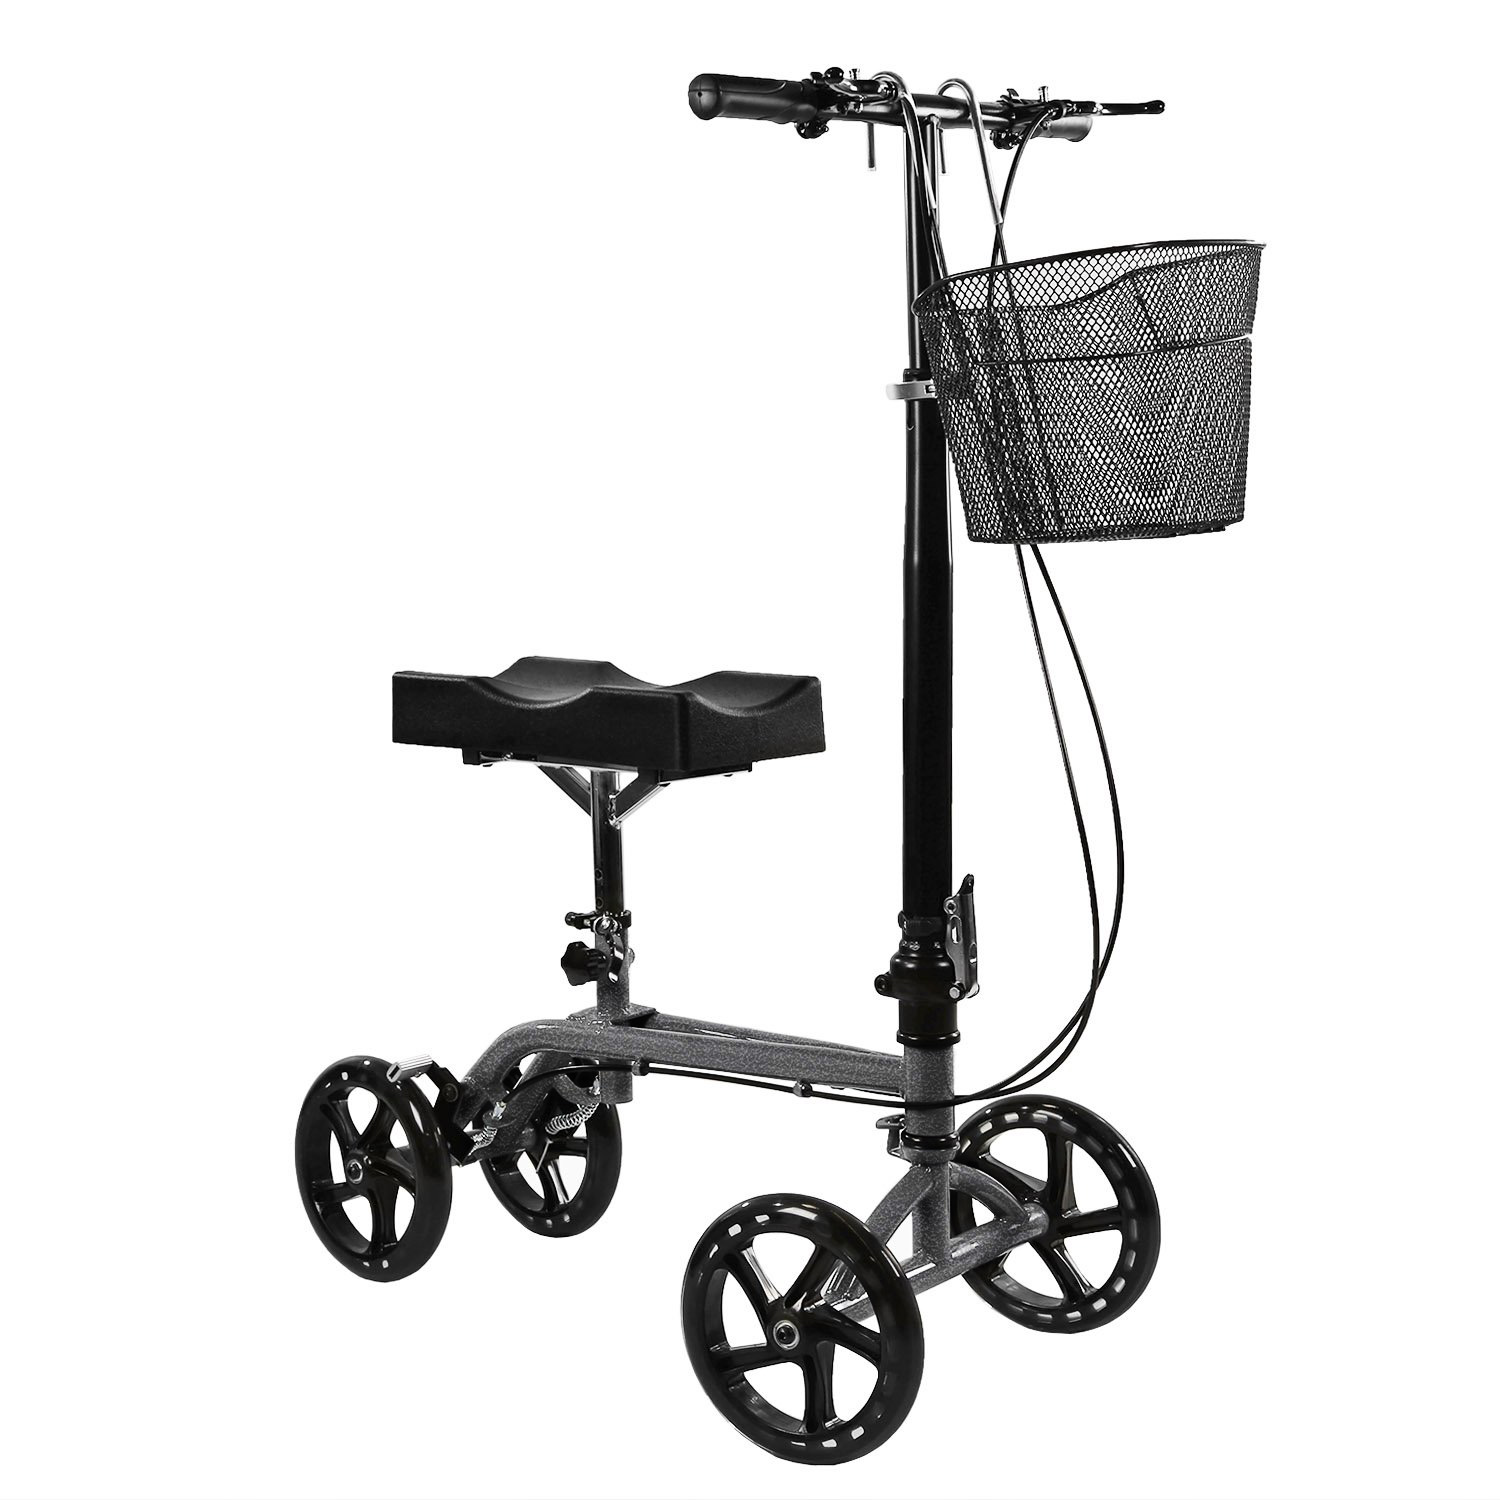 Clevr Foldable Medical Steerable Knee Walker Scooter Roller Crutch Alternative Silver